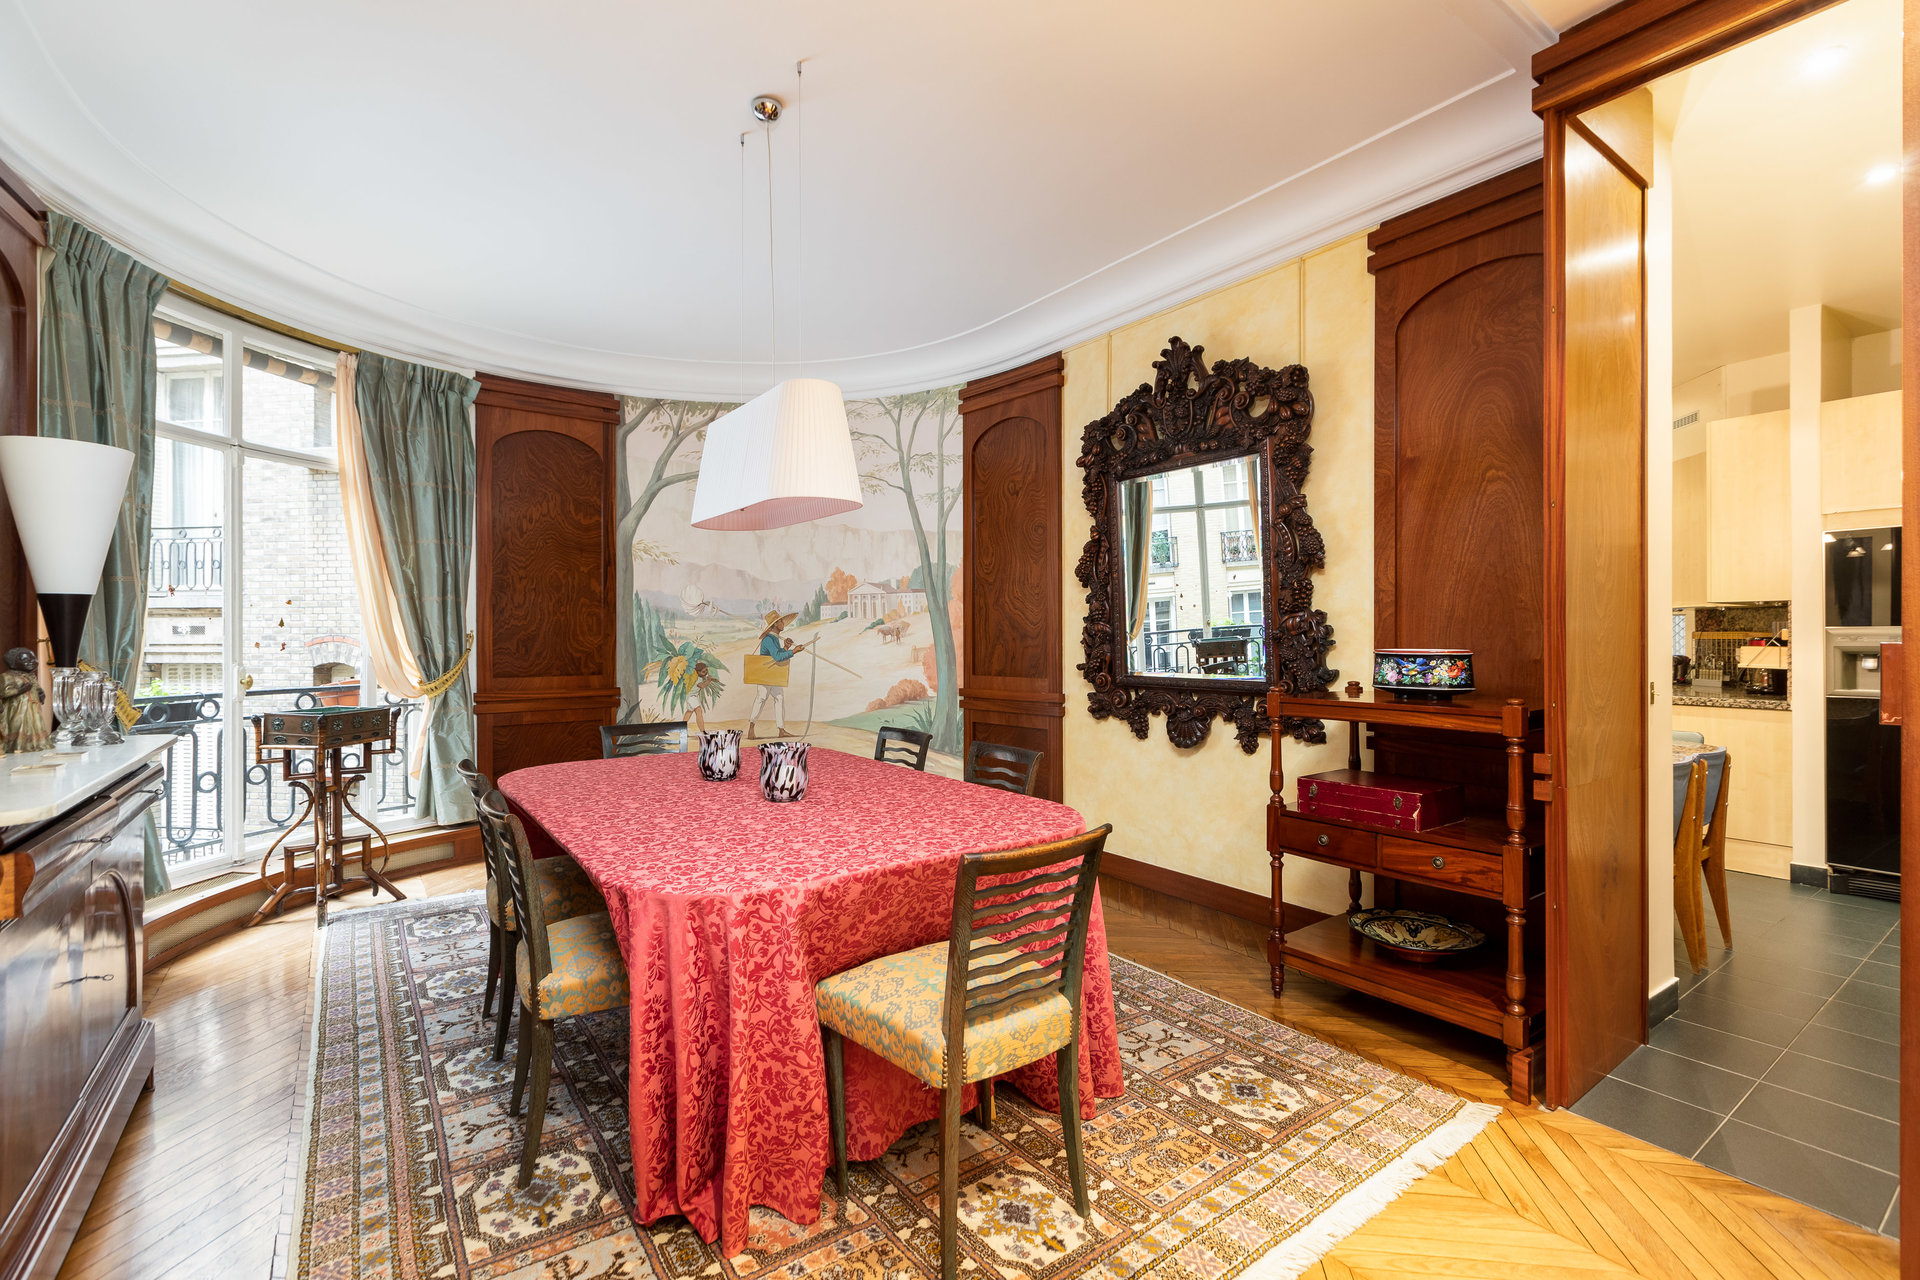 Magnificent apartment of 2012 square feet, in the heart of the 16th district: Passy